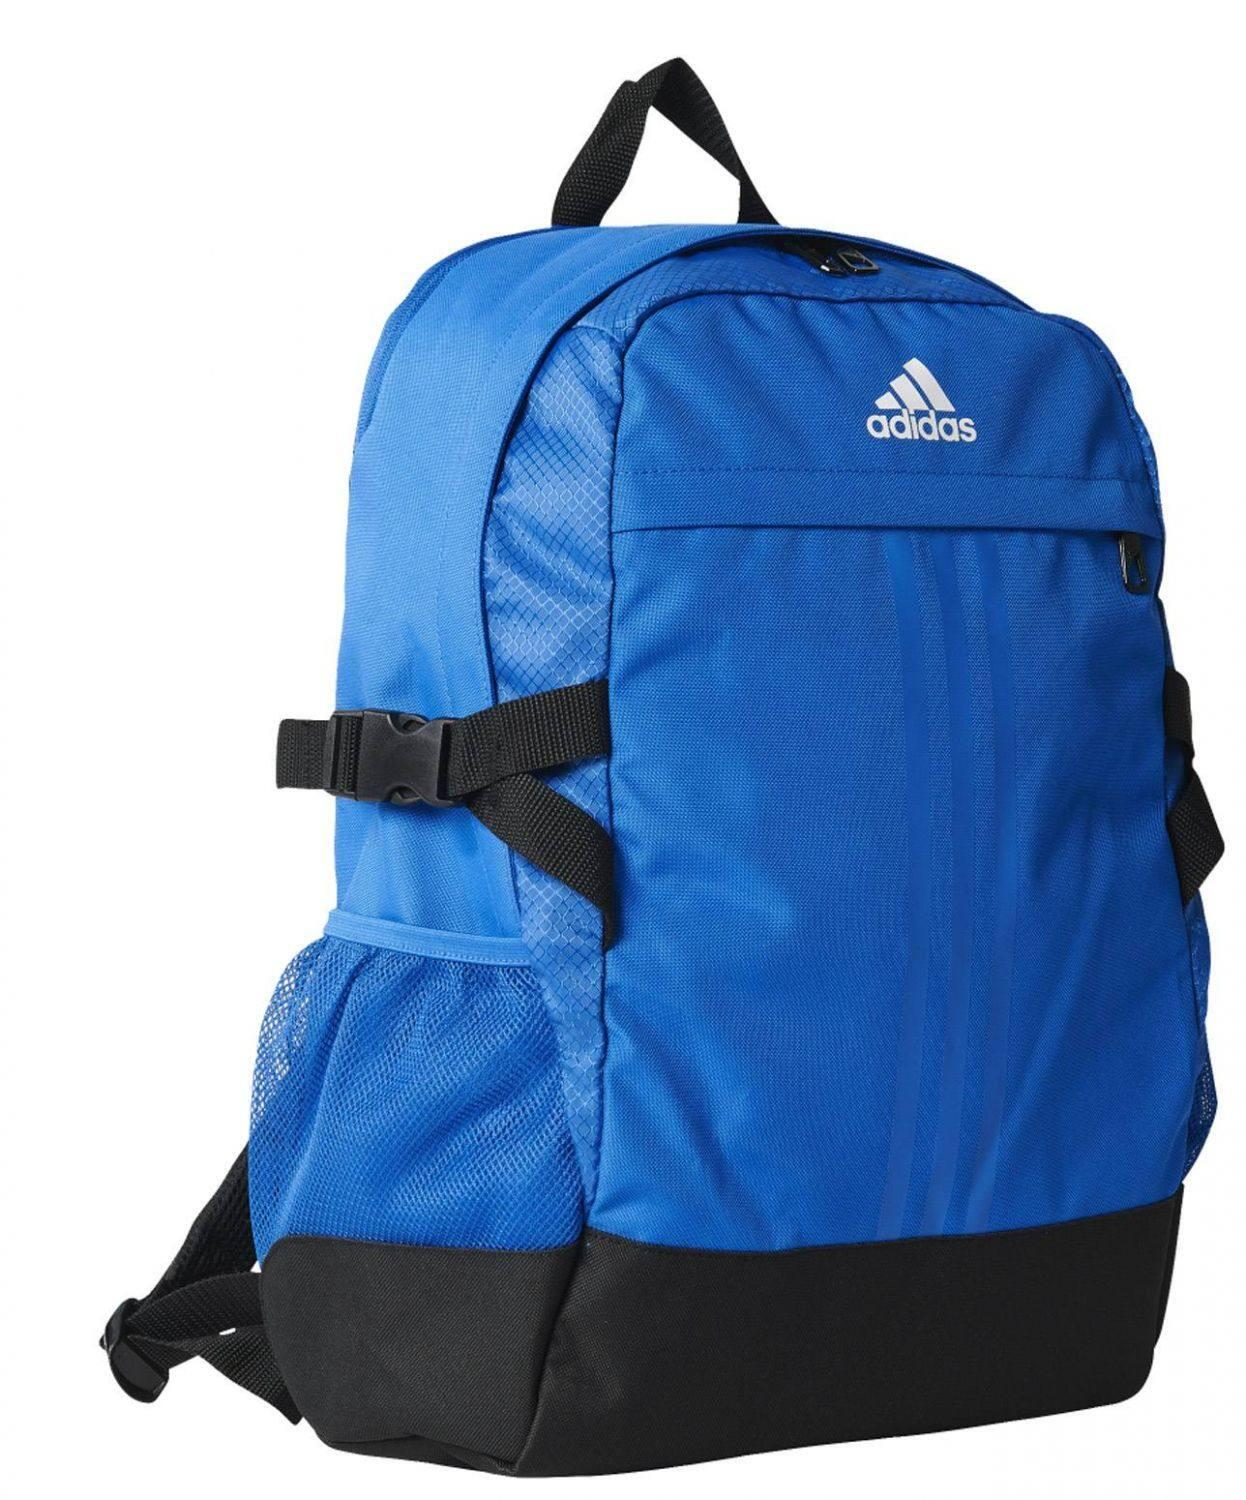 adidas-backpack-power-iii-m-laptoprucksack-farbe-blue-blue-white-